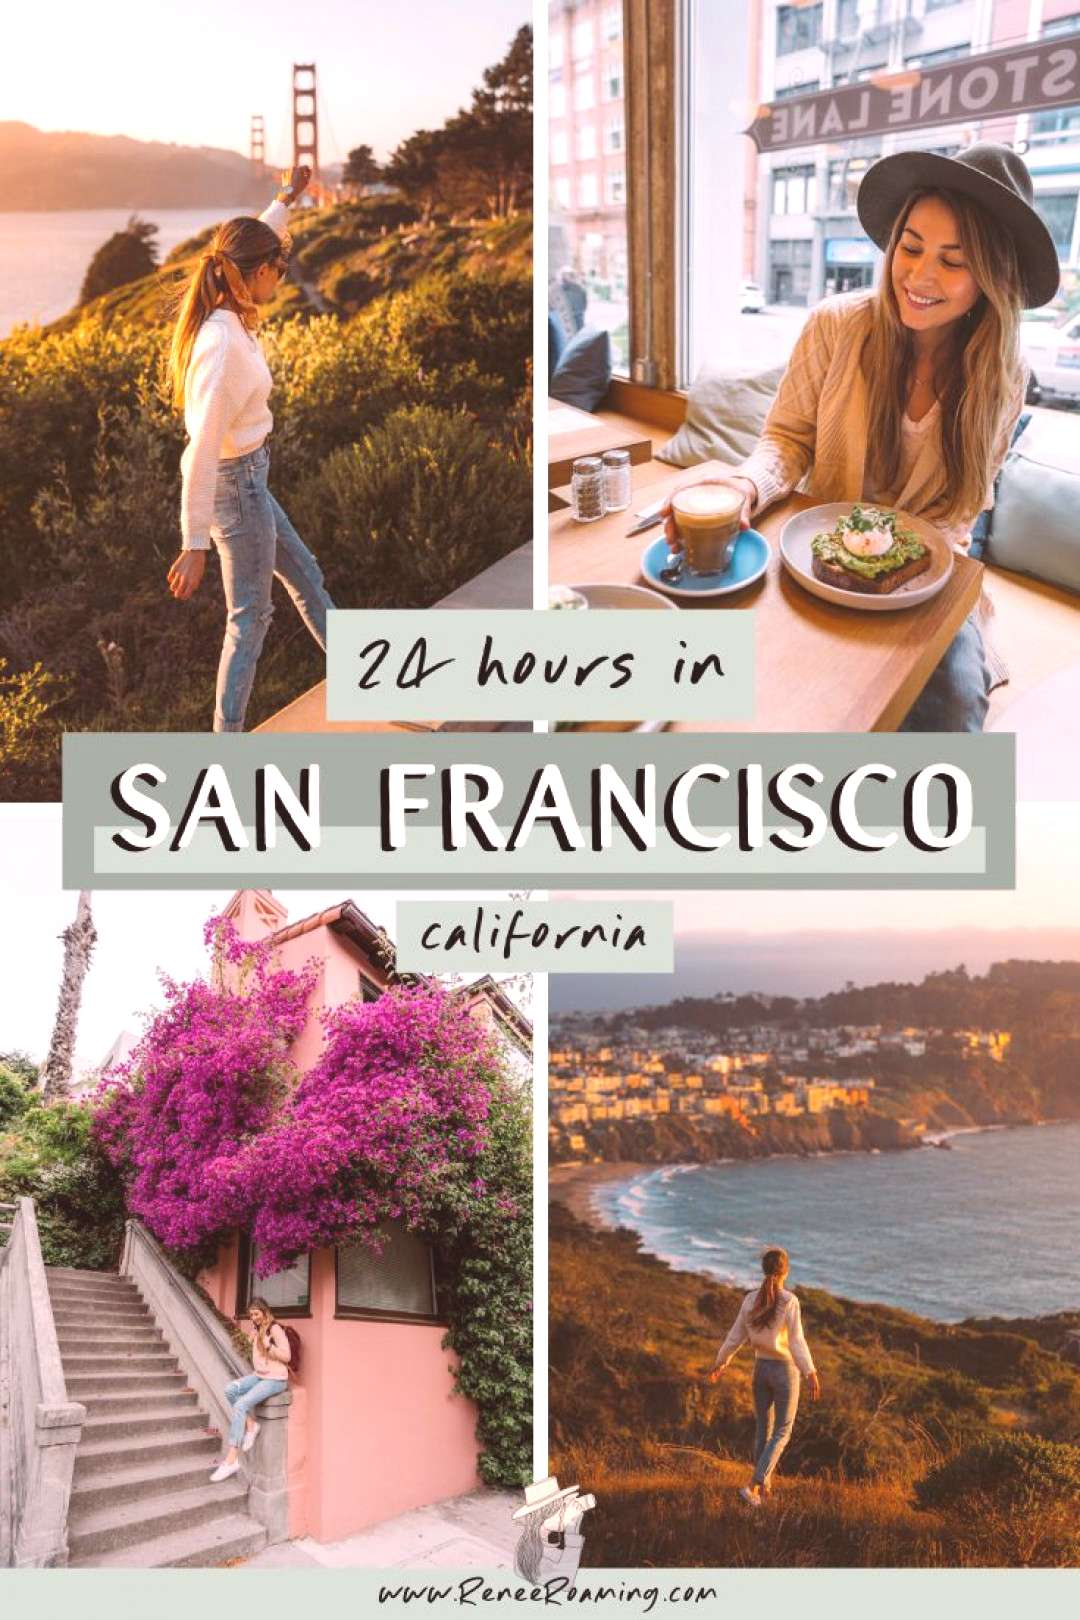 How to Spend 24 Hours in San Francisco, California This full travel guide will take you on an epic